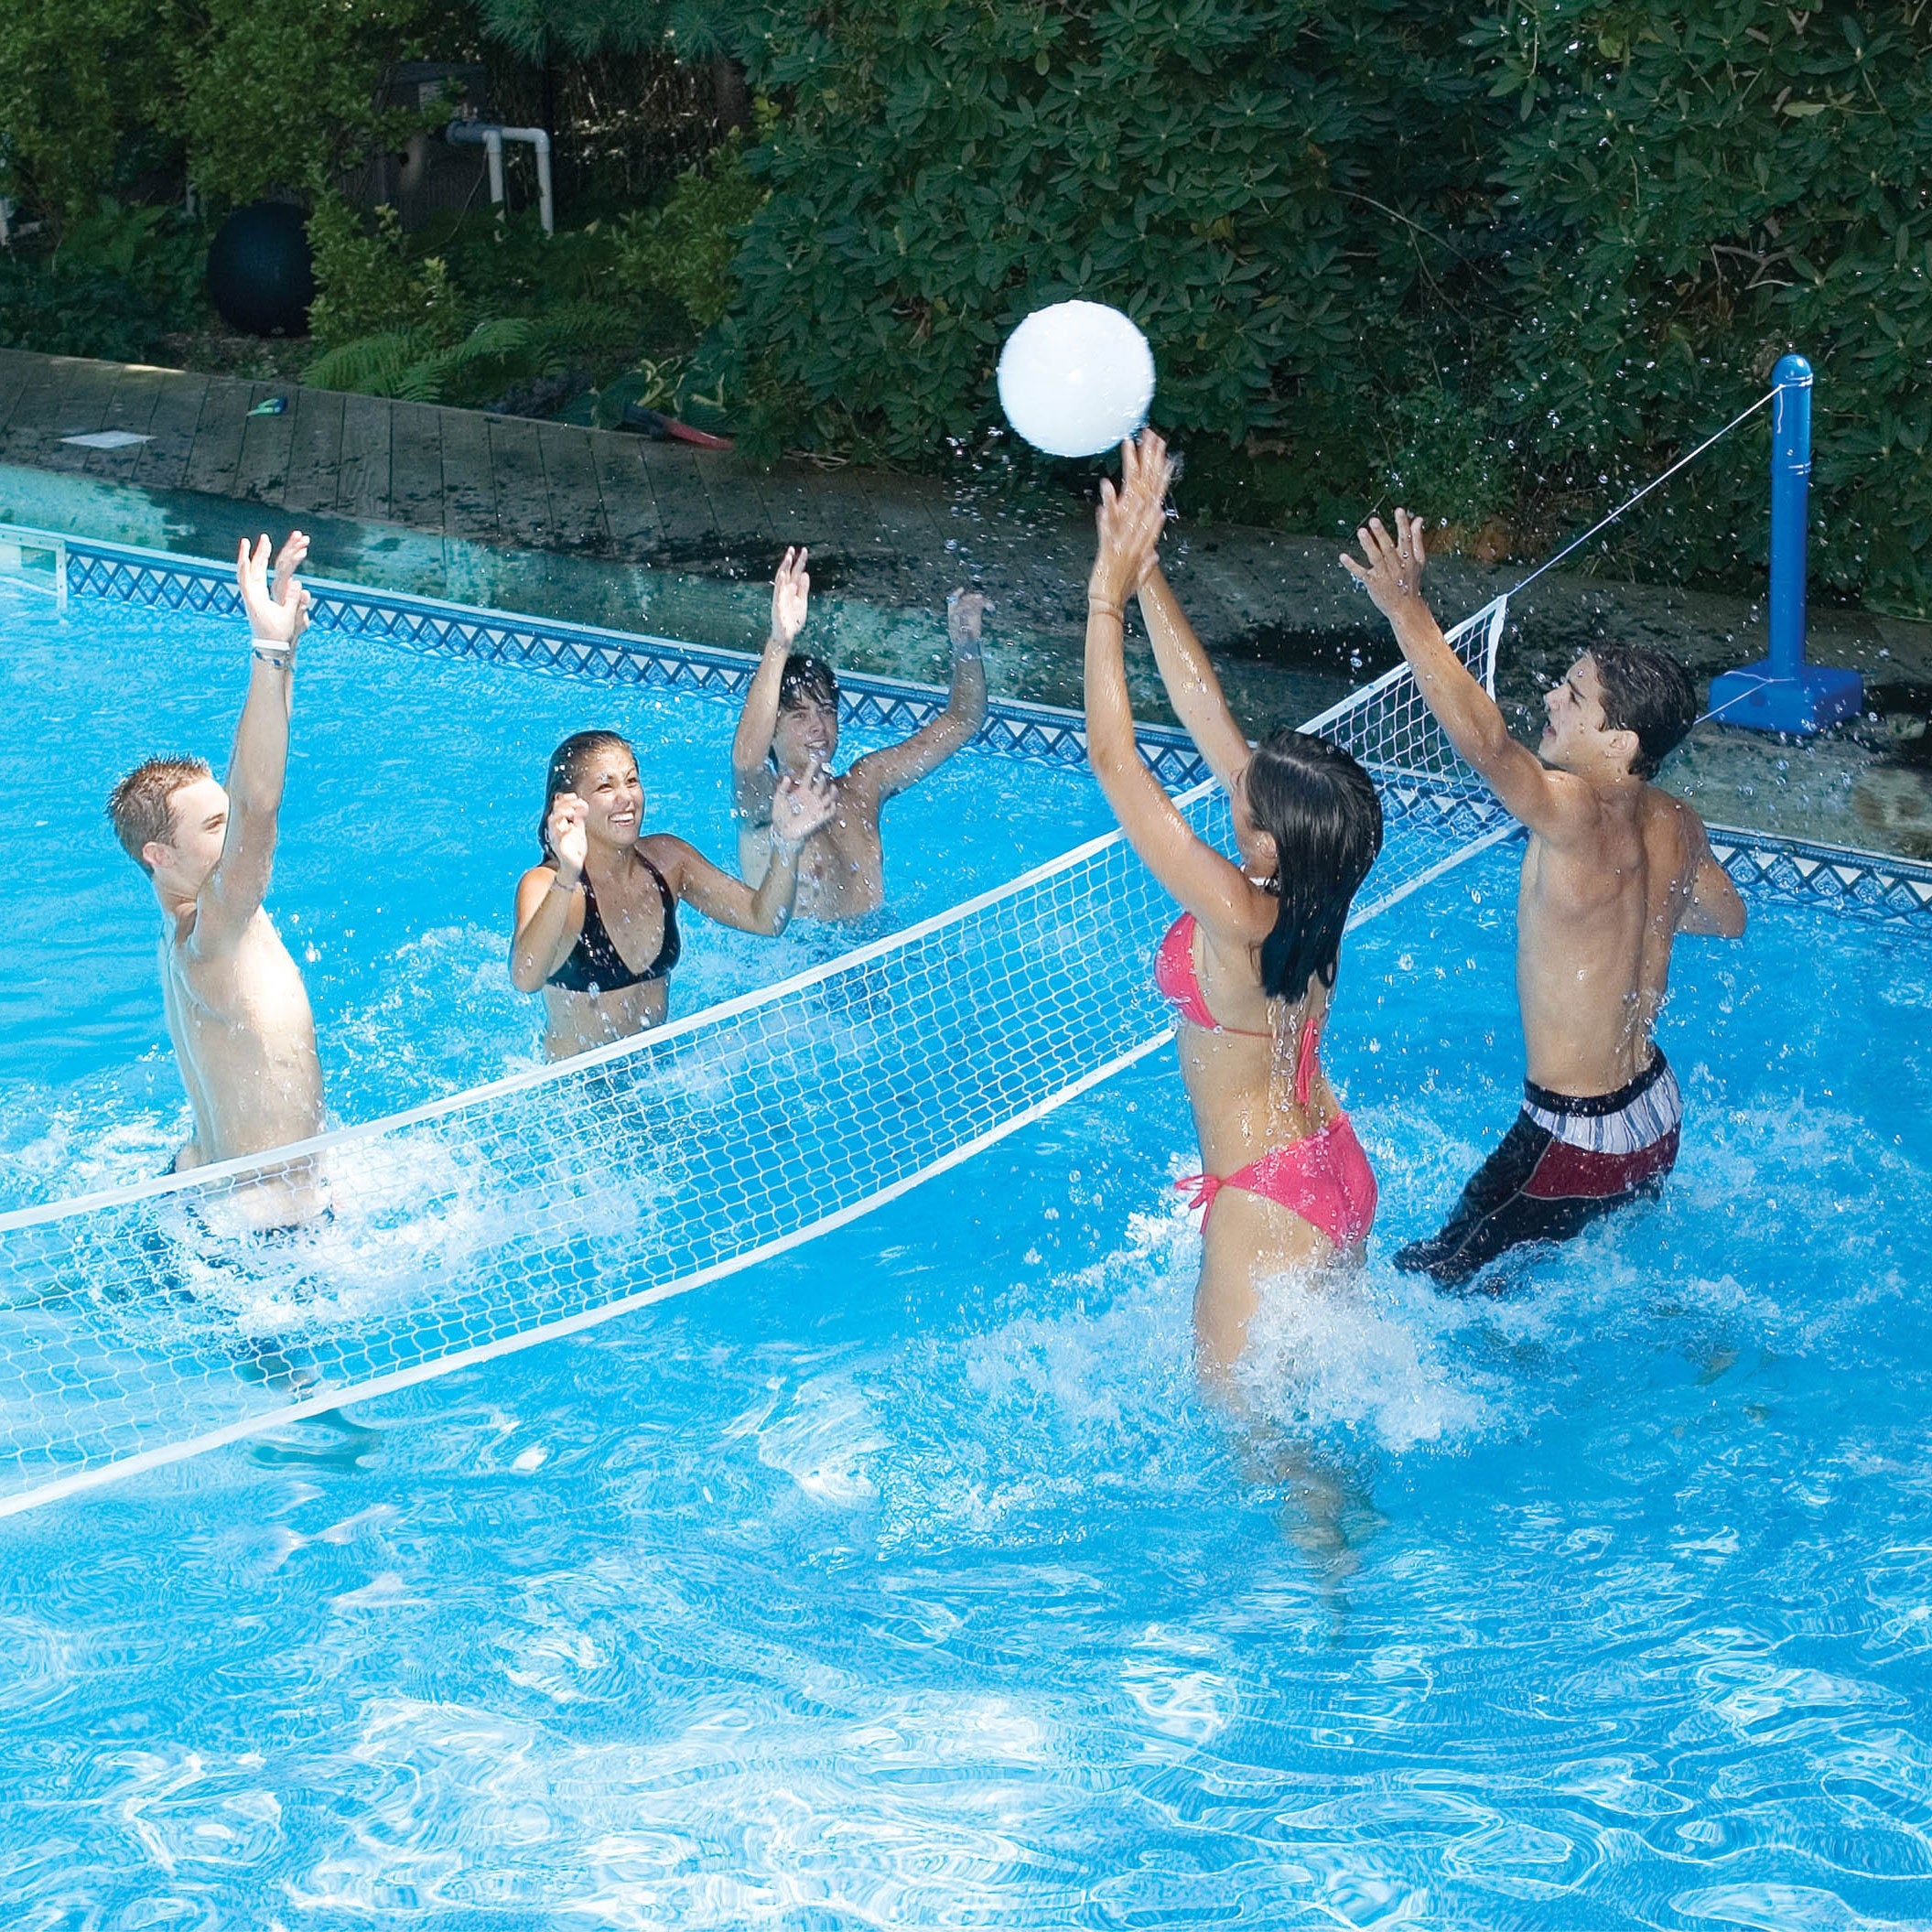 Swimline Cross Pool Volleyball For In Ground Swimming Pools Free Shipping Today 11321322